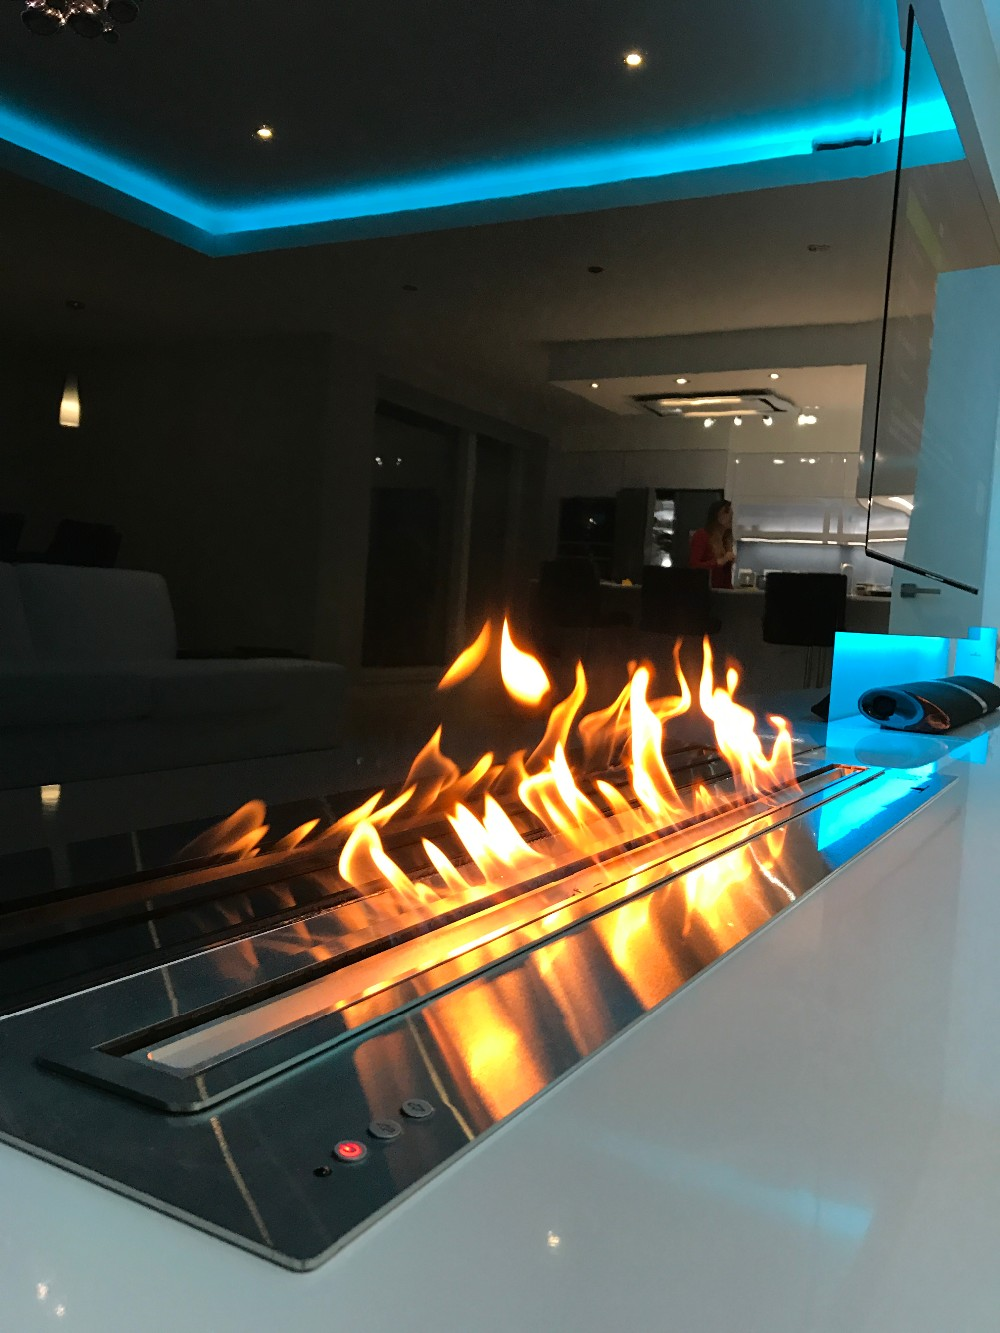 On Sale 48'' Fireplace Insert With Biofuel Burner Remote Control